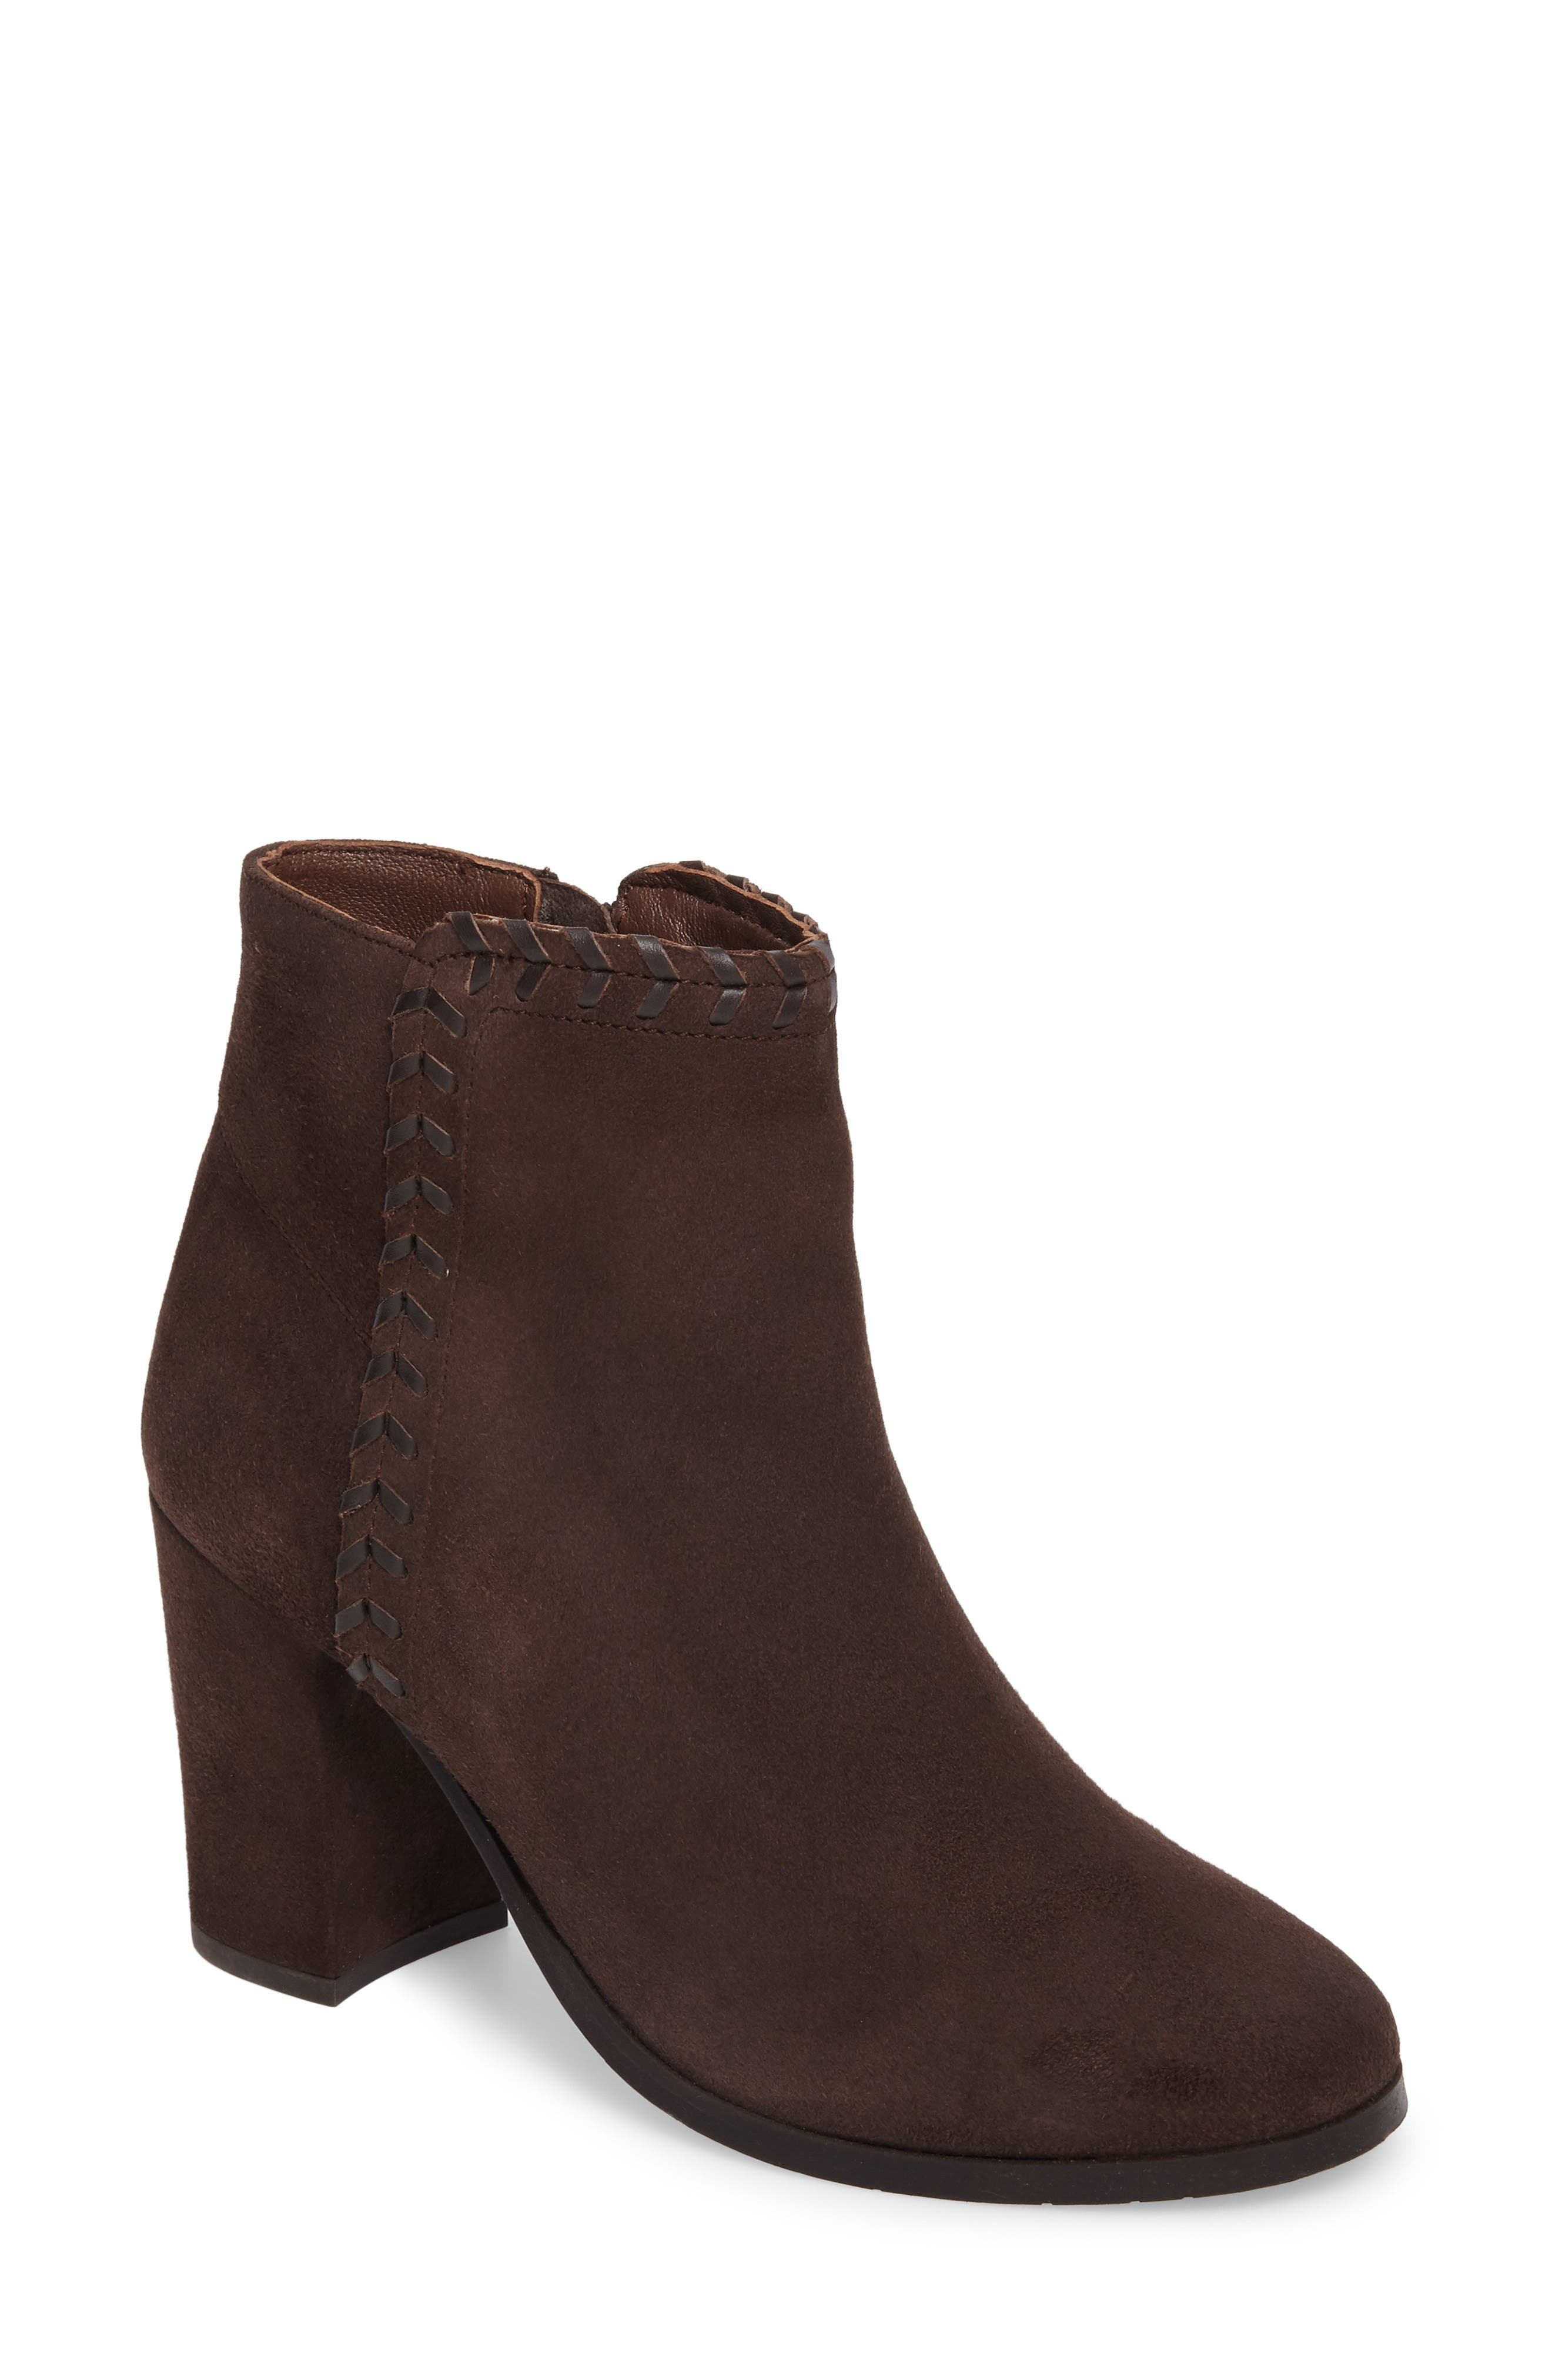 Heavenly Bootie,                             Main thumbnail 1, color,                             Taupe Suede